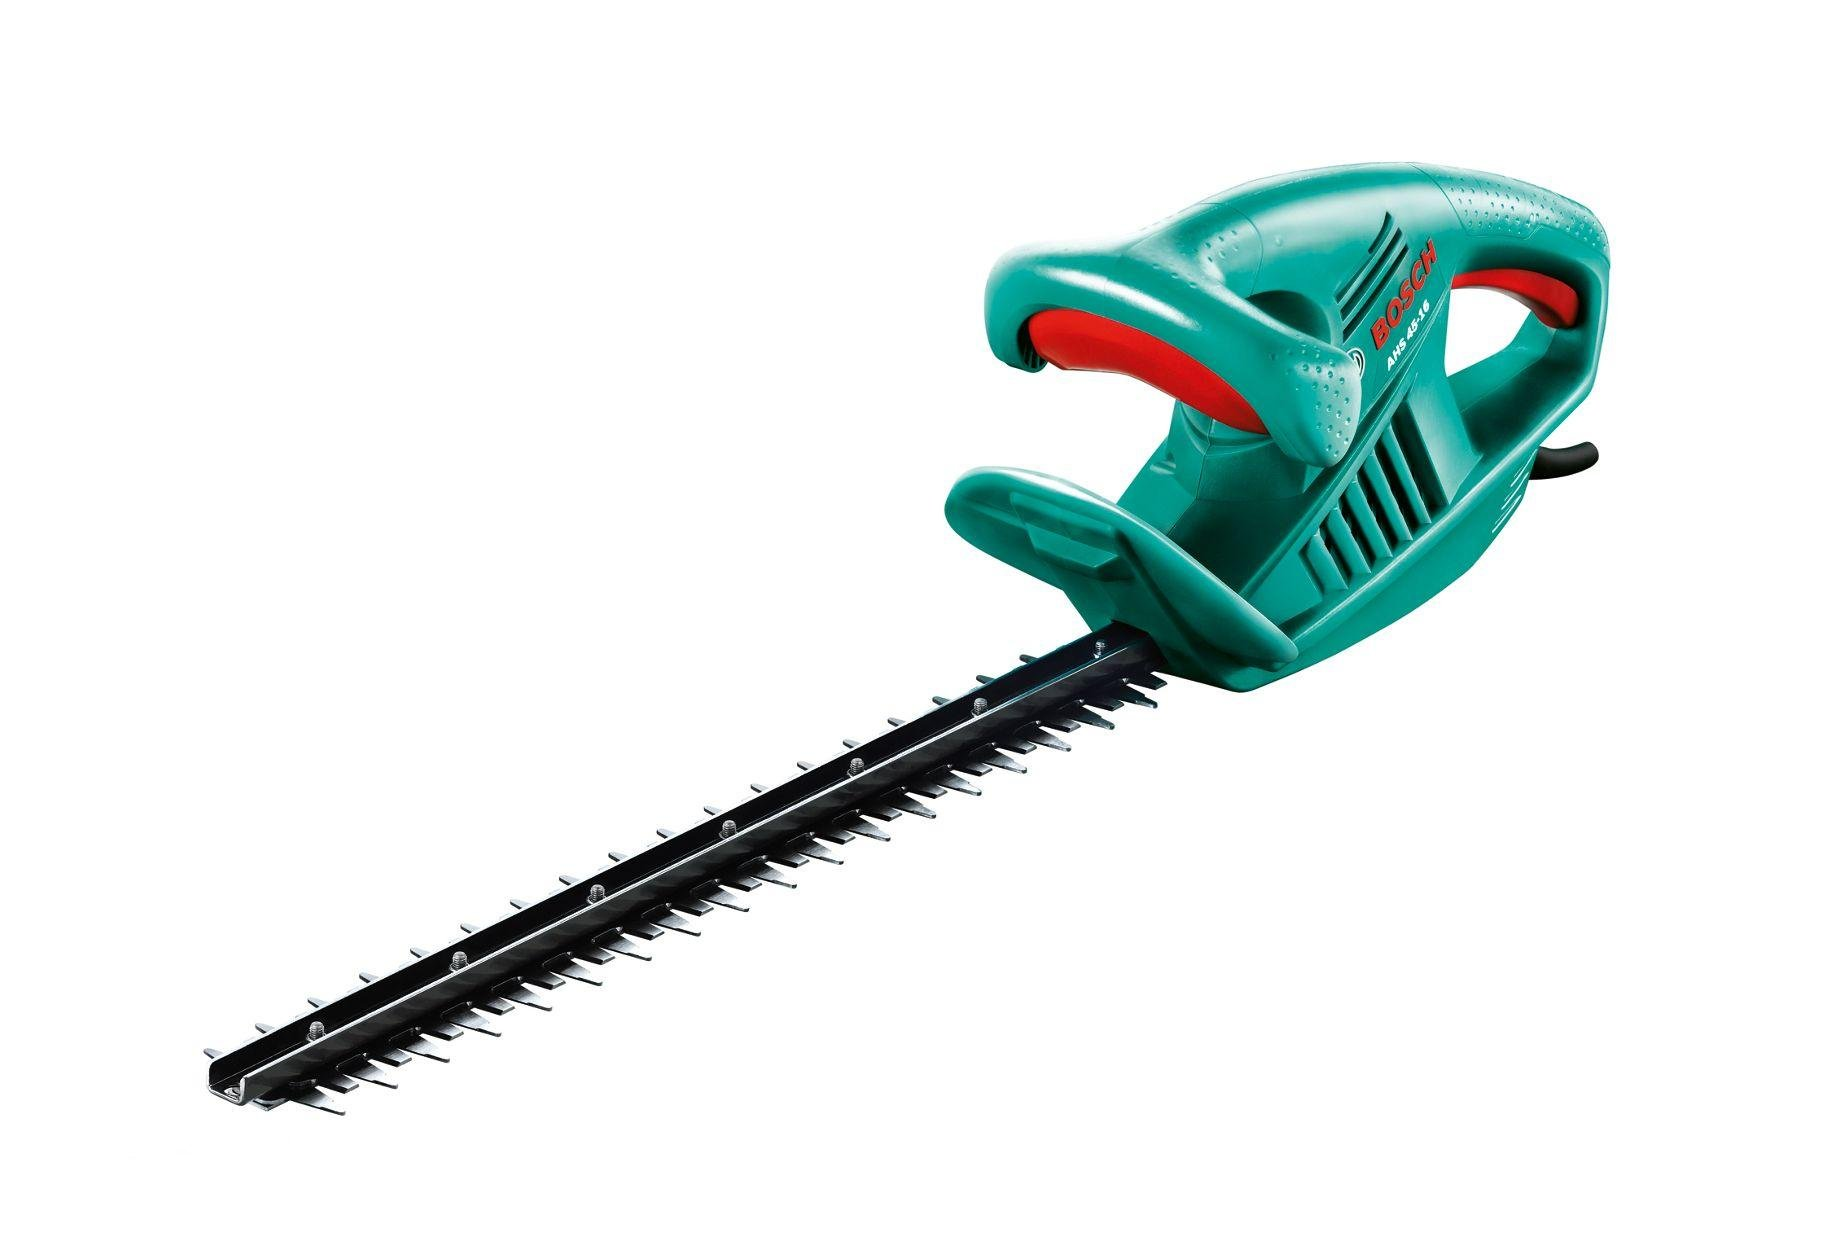 Bosch - AHS - 45-16 Electric - Corded - Hedge Trimmer - 420W at Argos